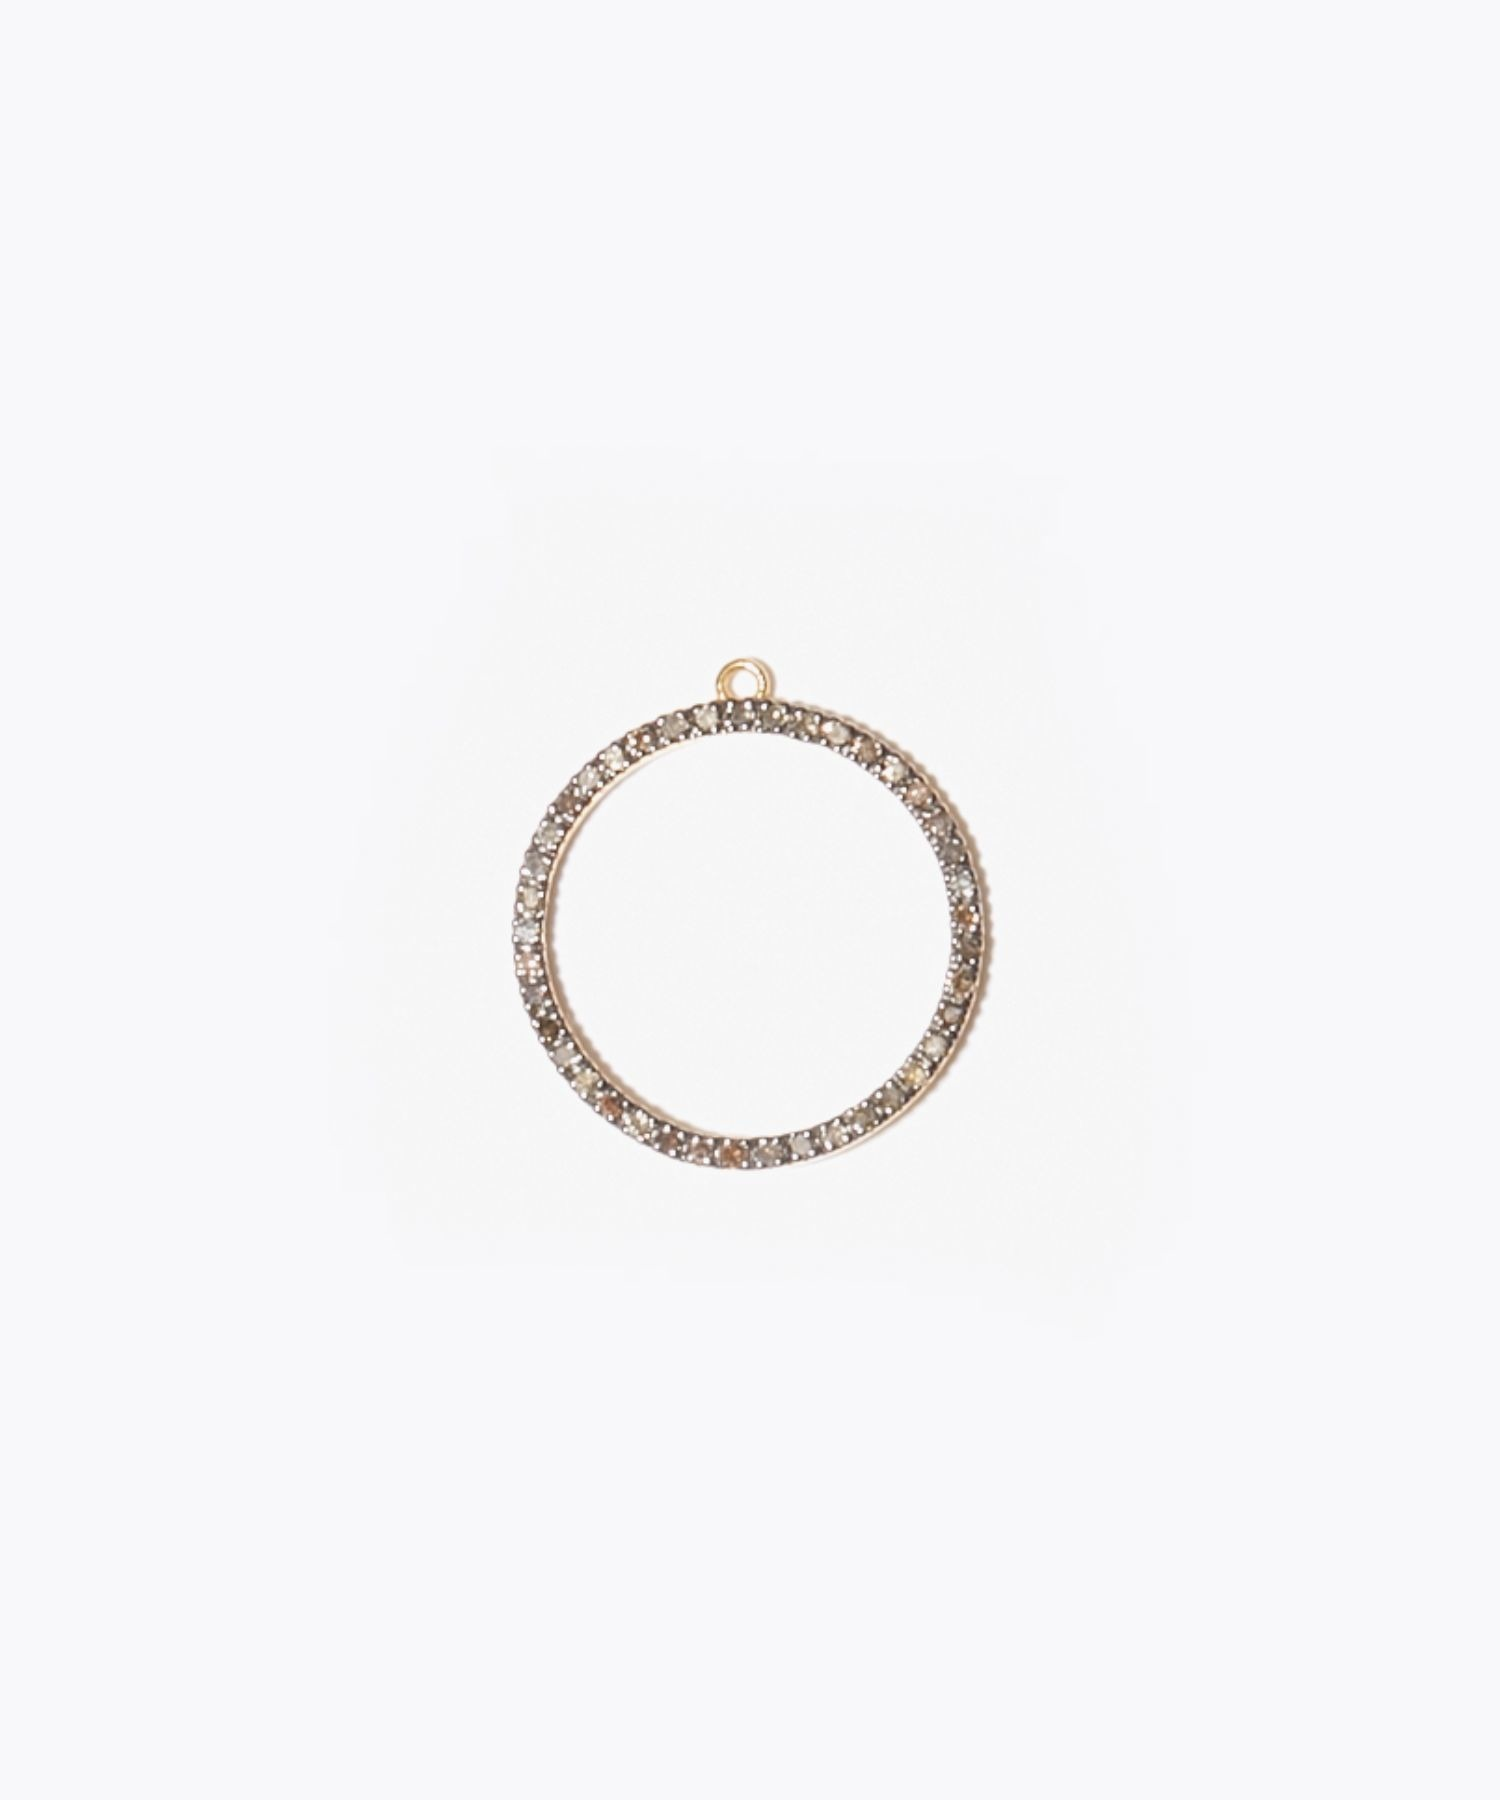 [gaia] pave circle ear charm